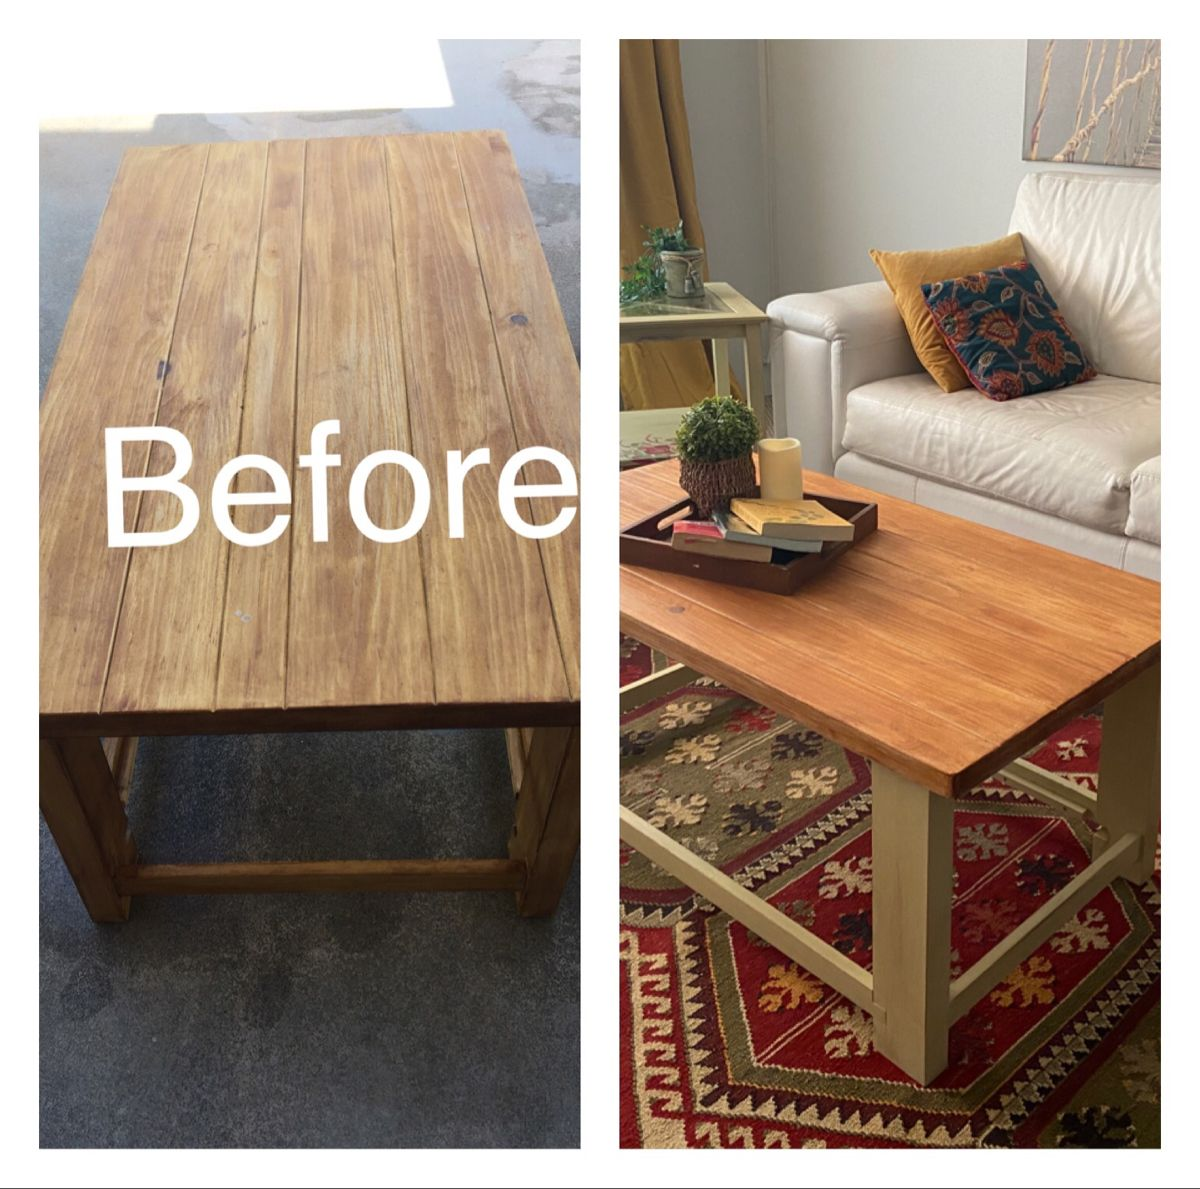 #makeover #diy #table #coffeetable #interiordesigner #interiordecor #frenchdesign #decore #diyhomedecor #countryhomedecor #country #designideas #design